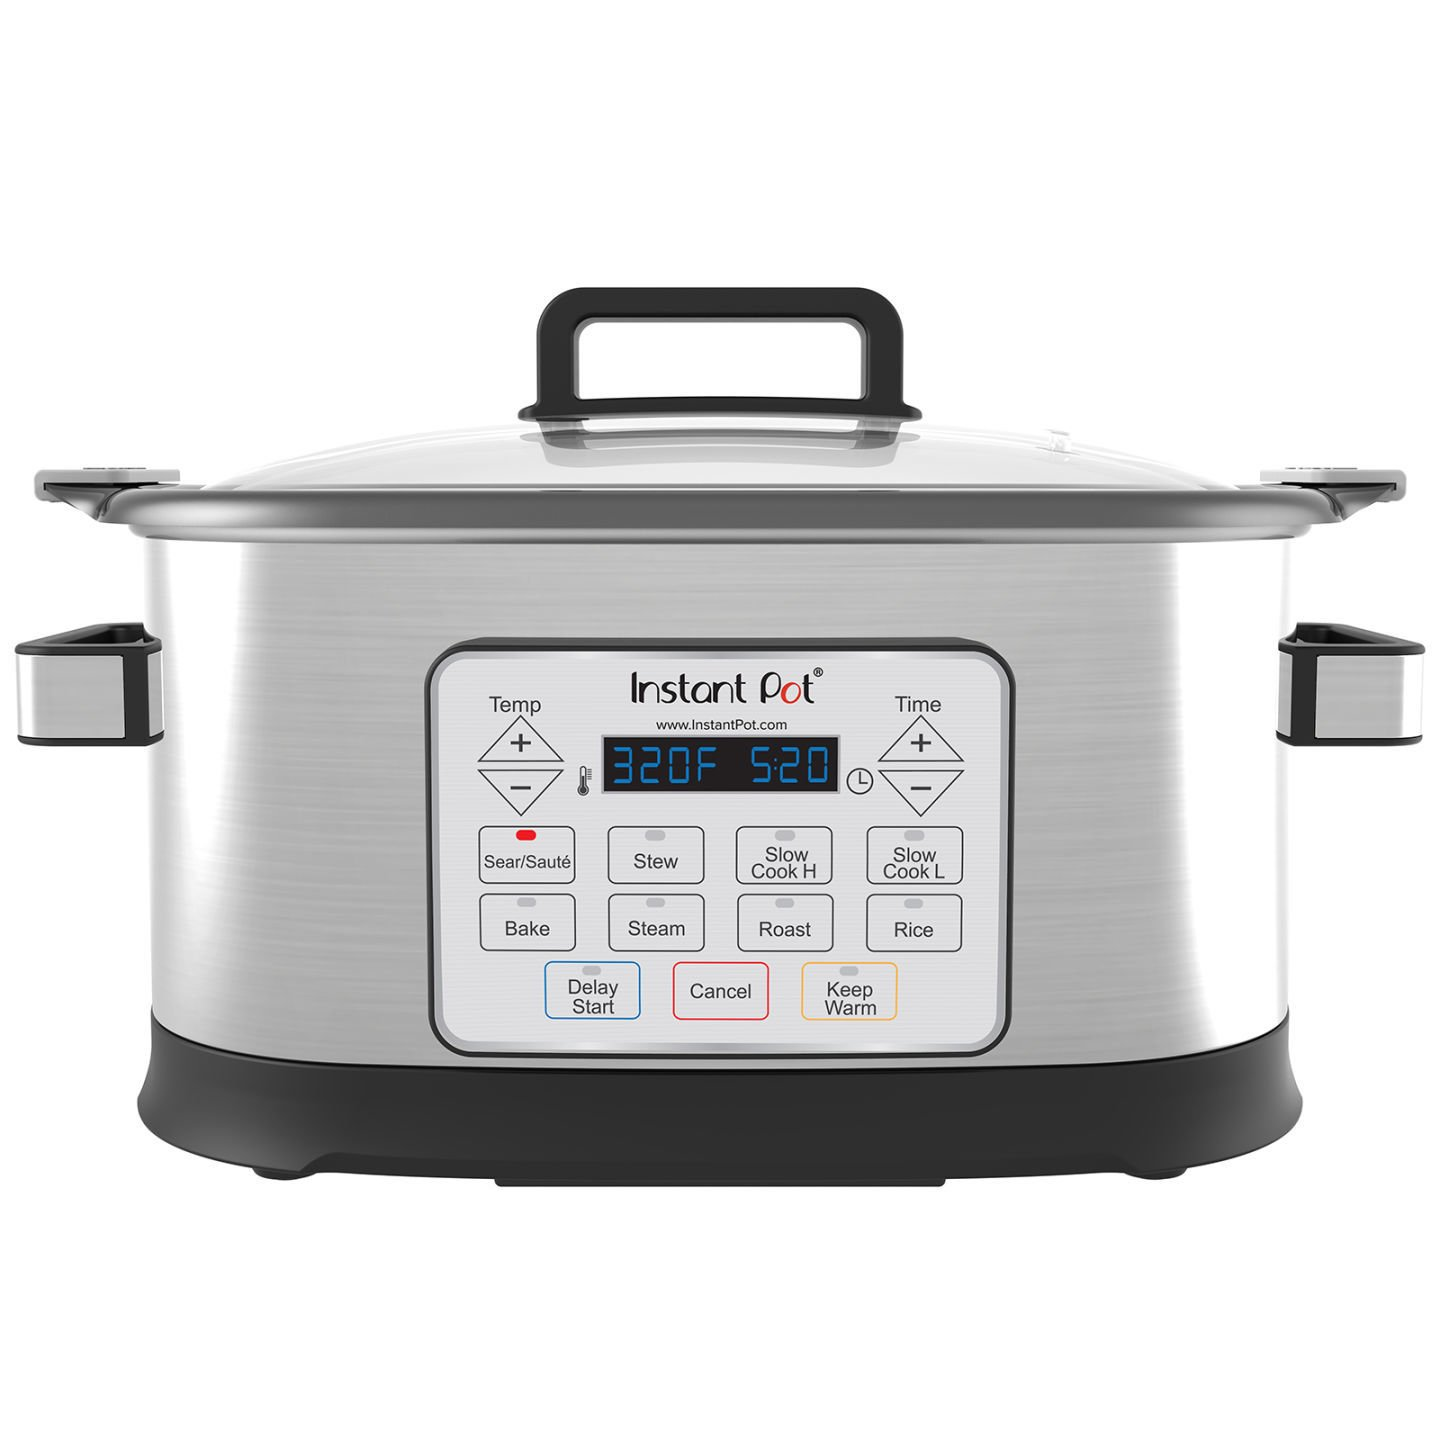 Which is better to have a multicooker, a convection oven or a double boiler in the kitchen 72